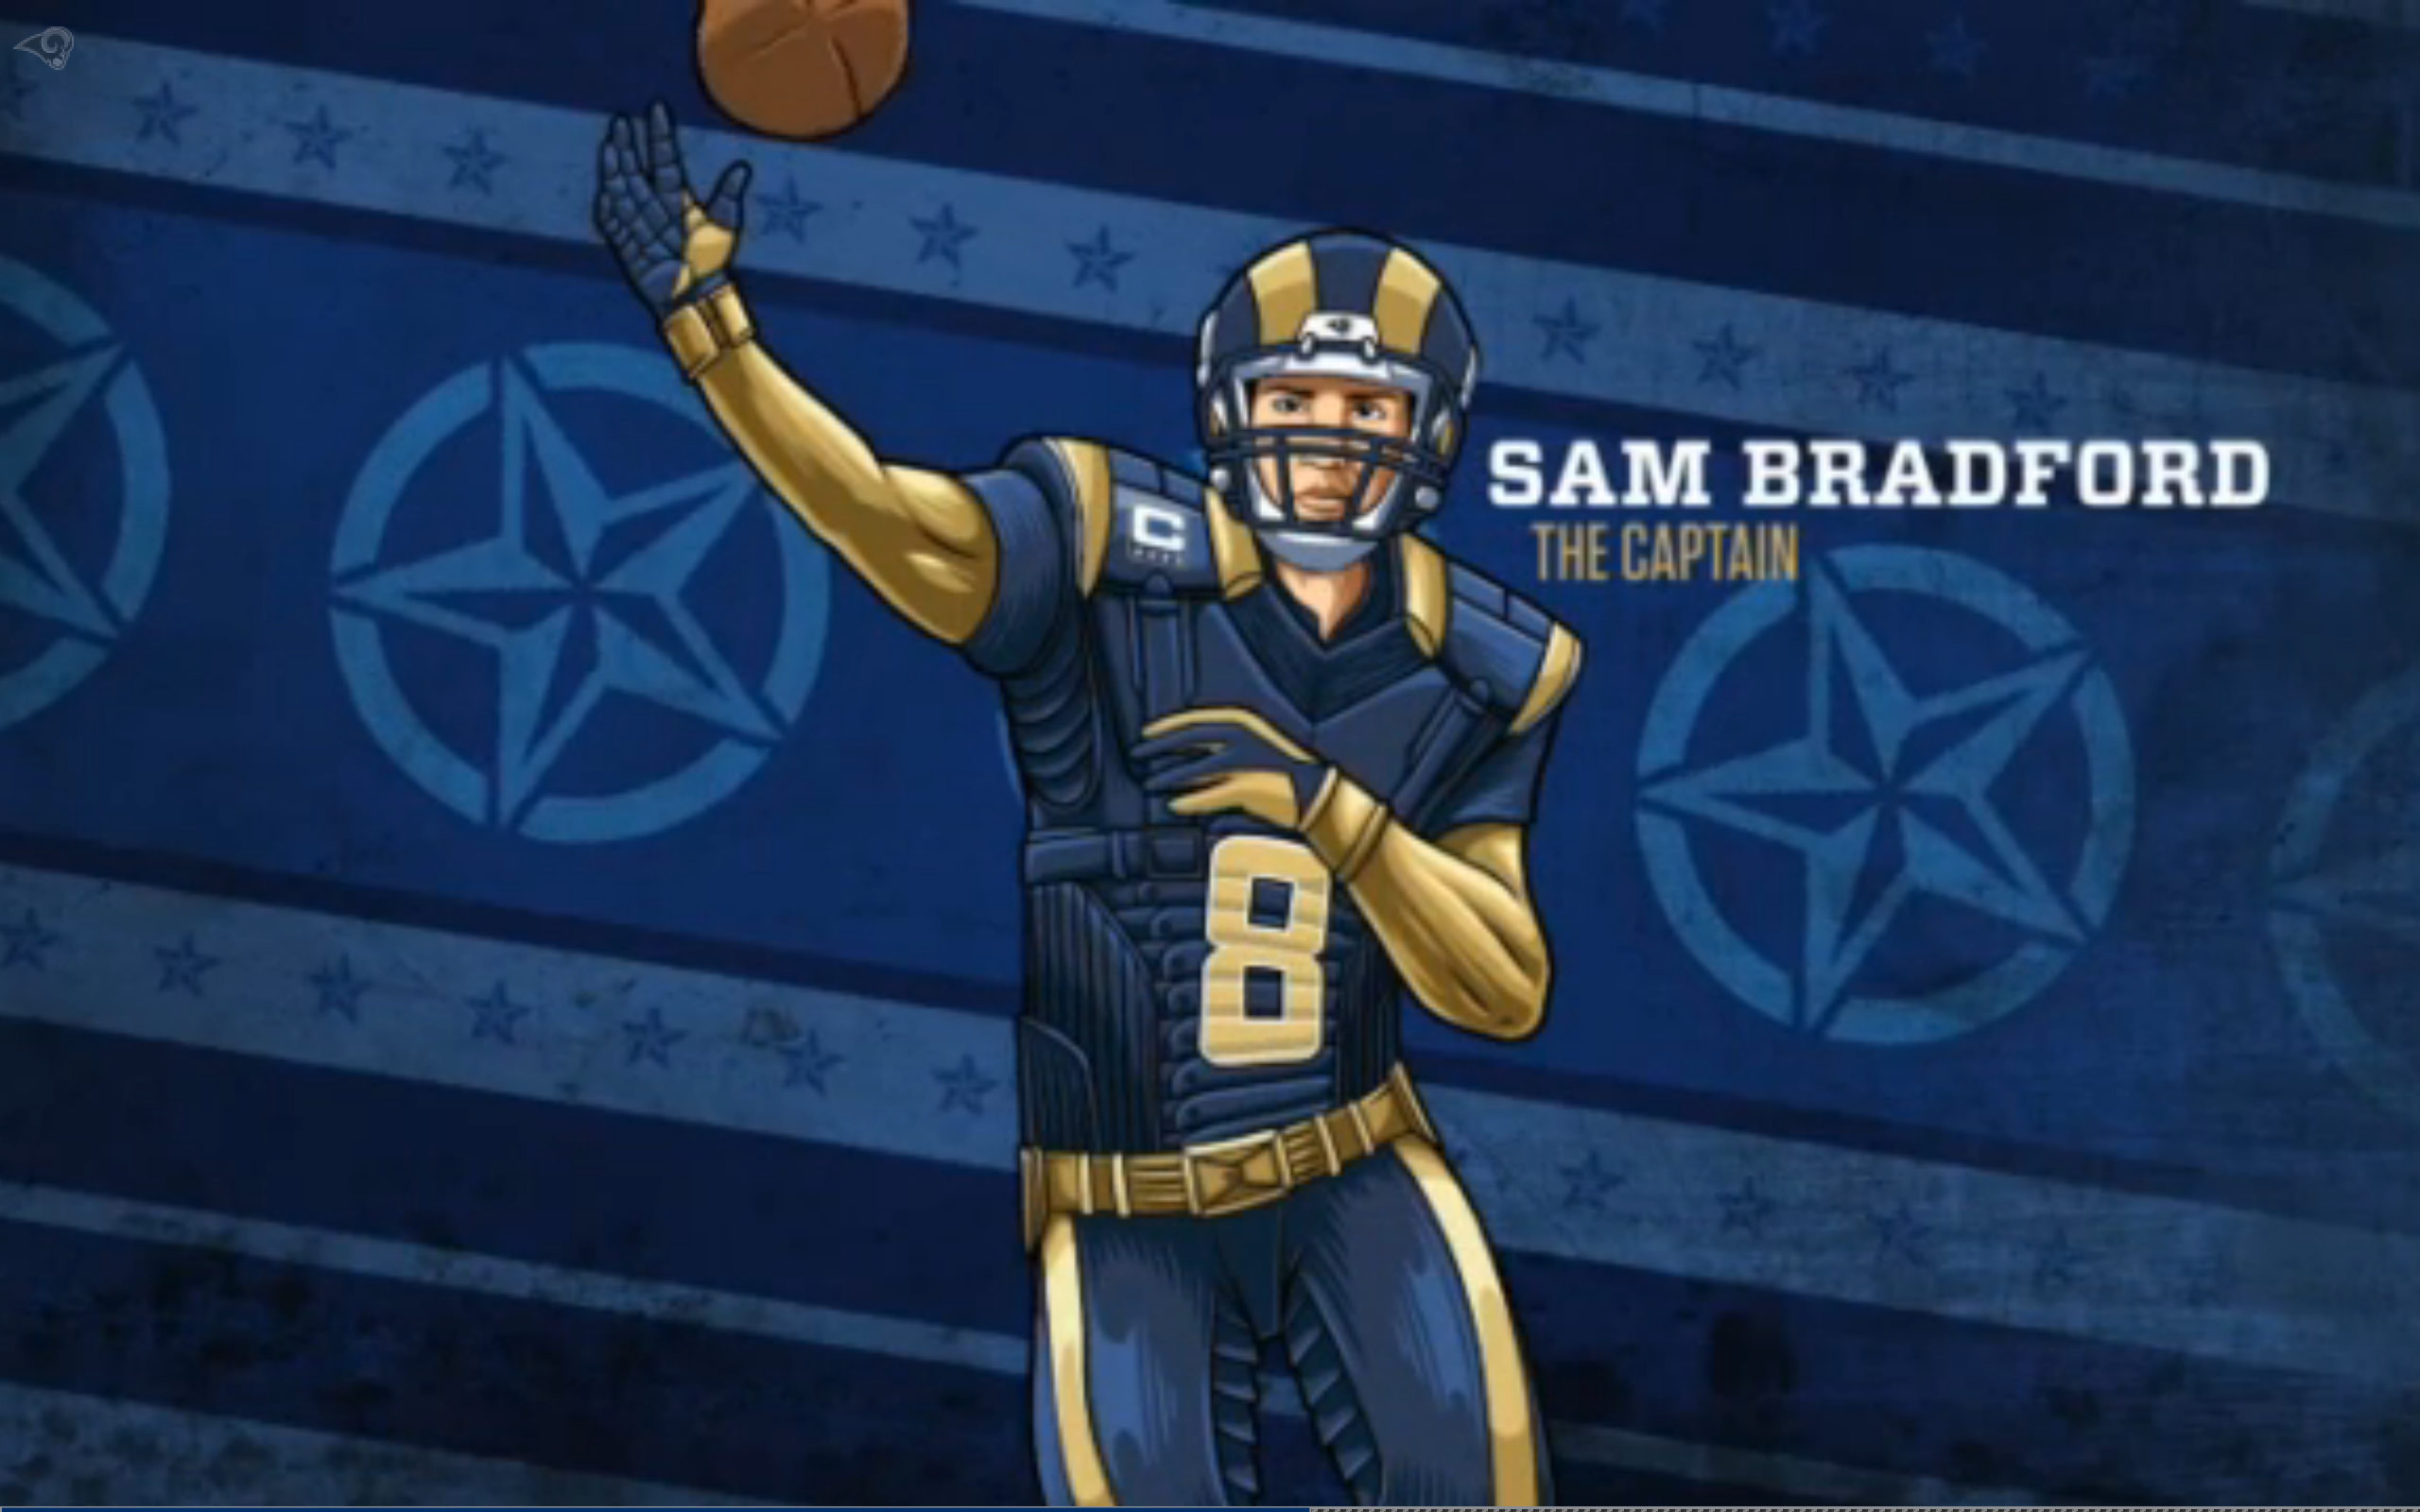 St Louis Rams Give Superhero Illustrations In New Quot Defend Our Turf Quot Campaign